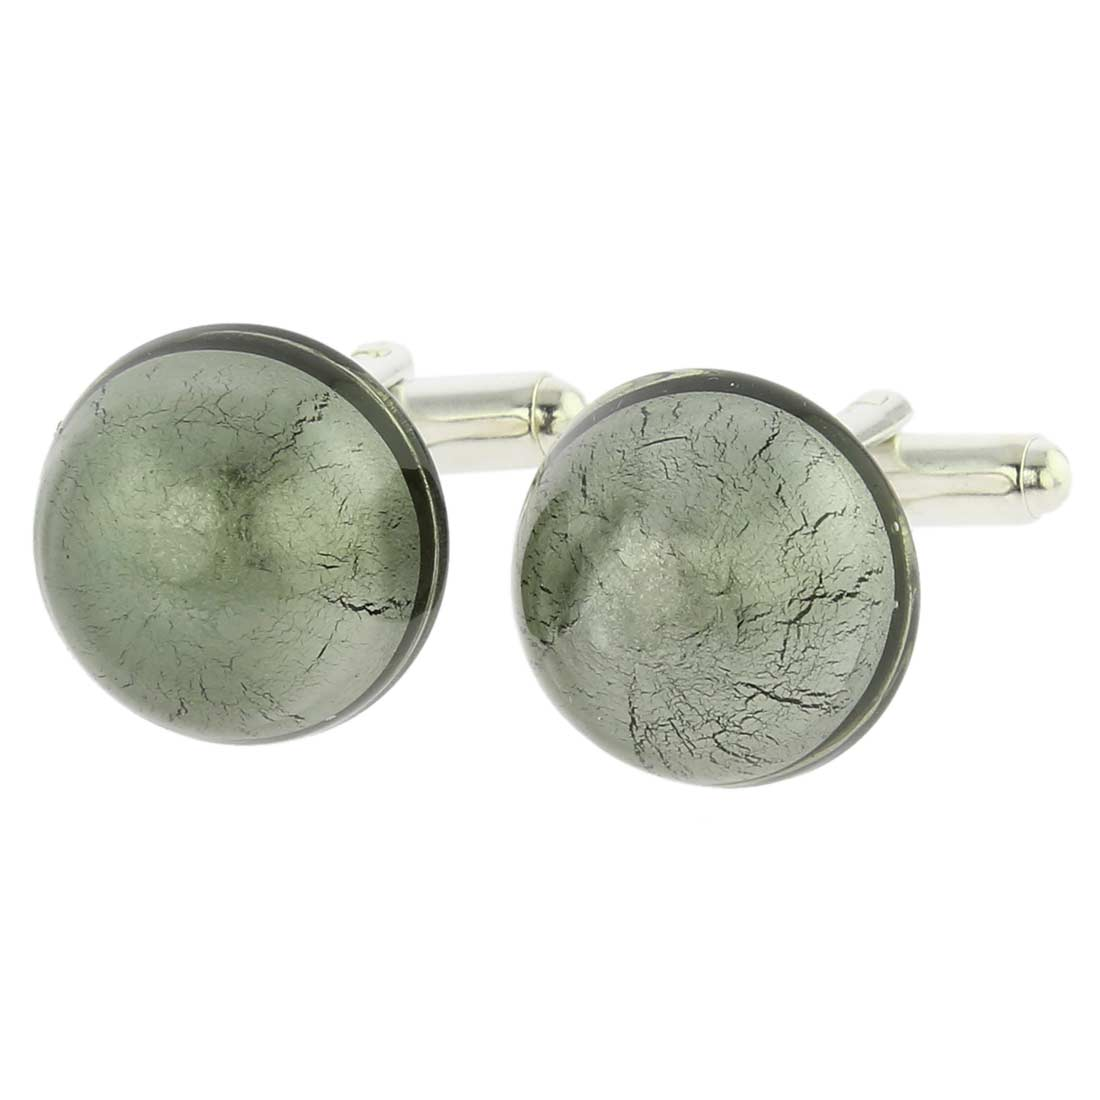 Venetian Dream Cufflinks - Silver Grey